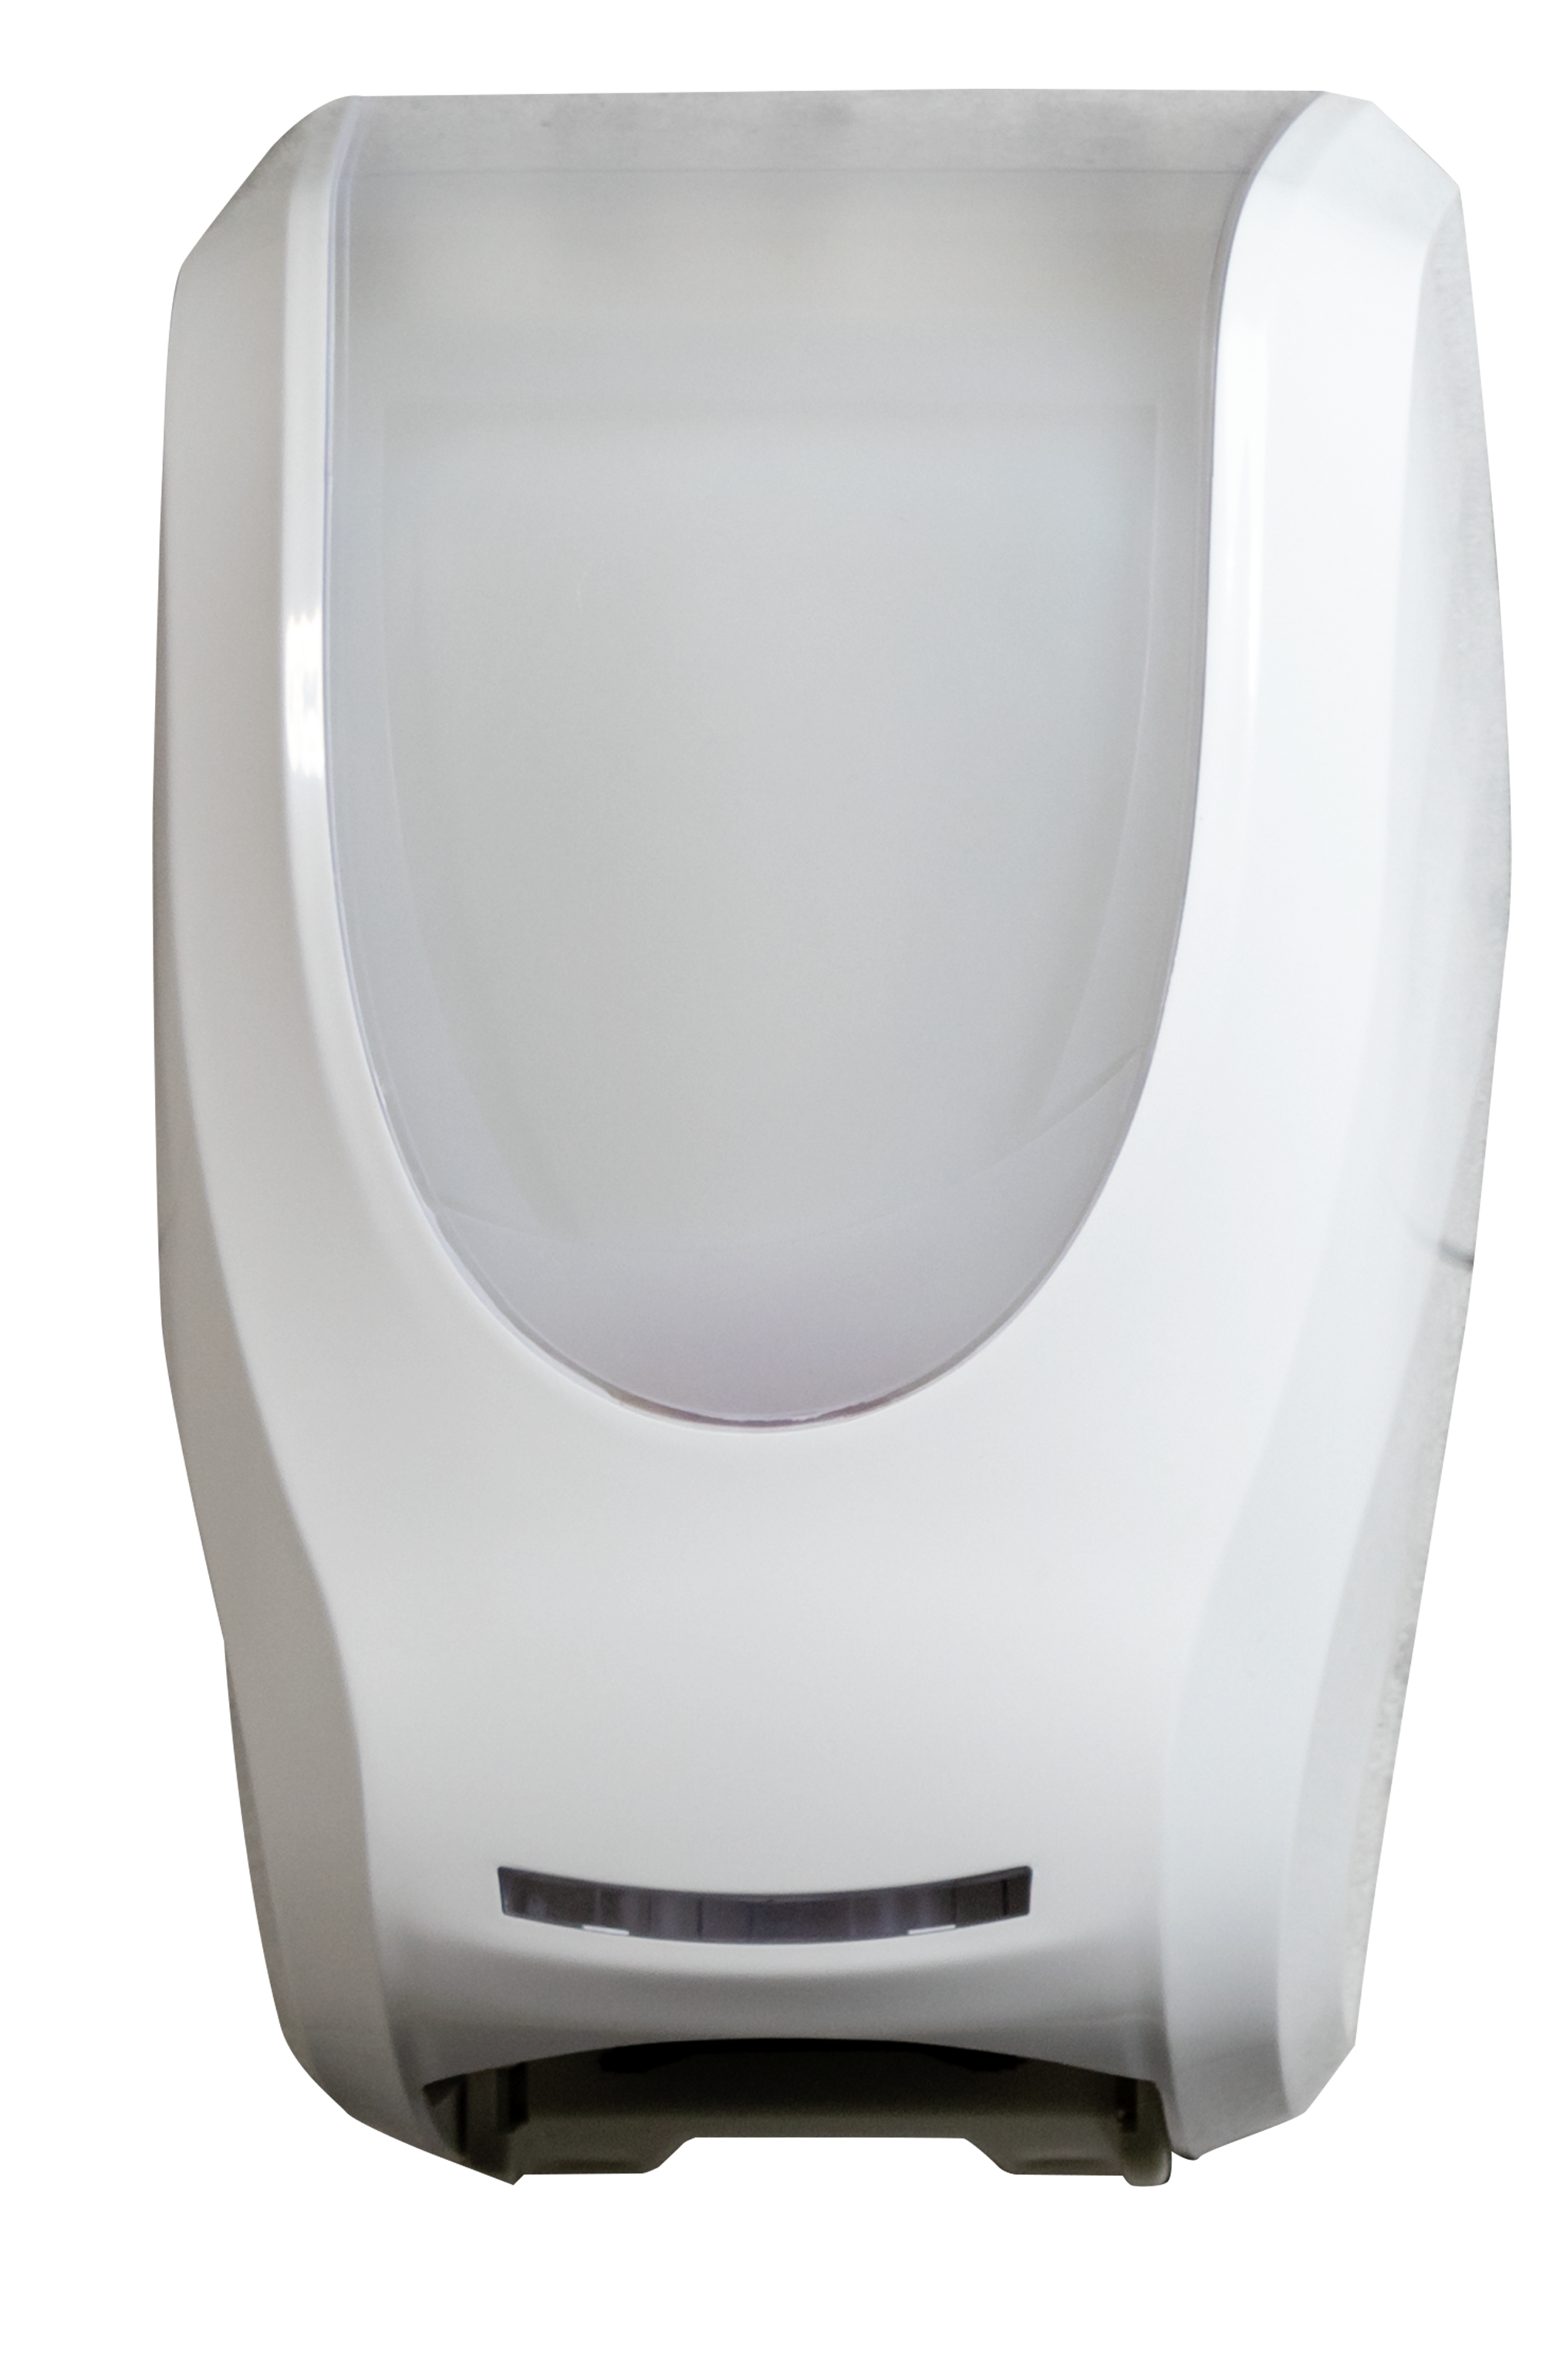 Nyco CSD-8107-W hands-free hand soap and hand sanitizer dispenser